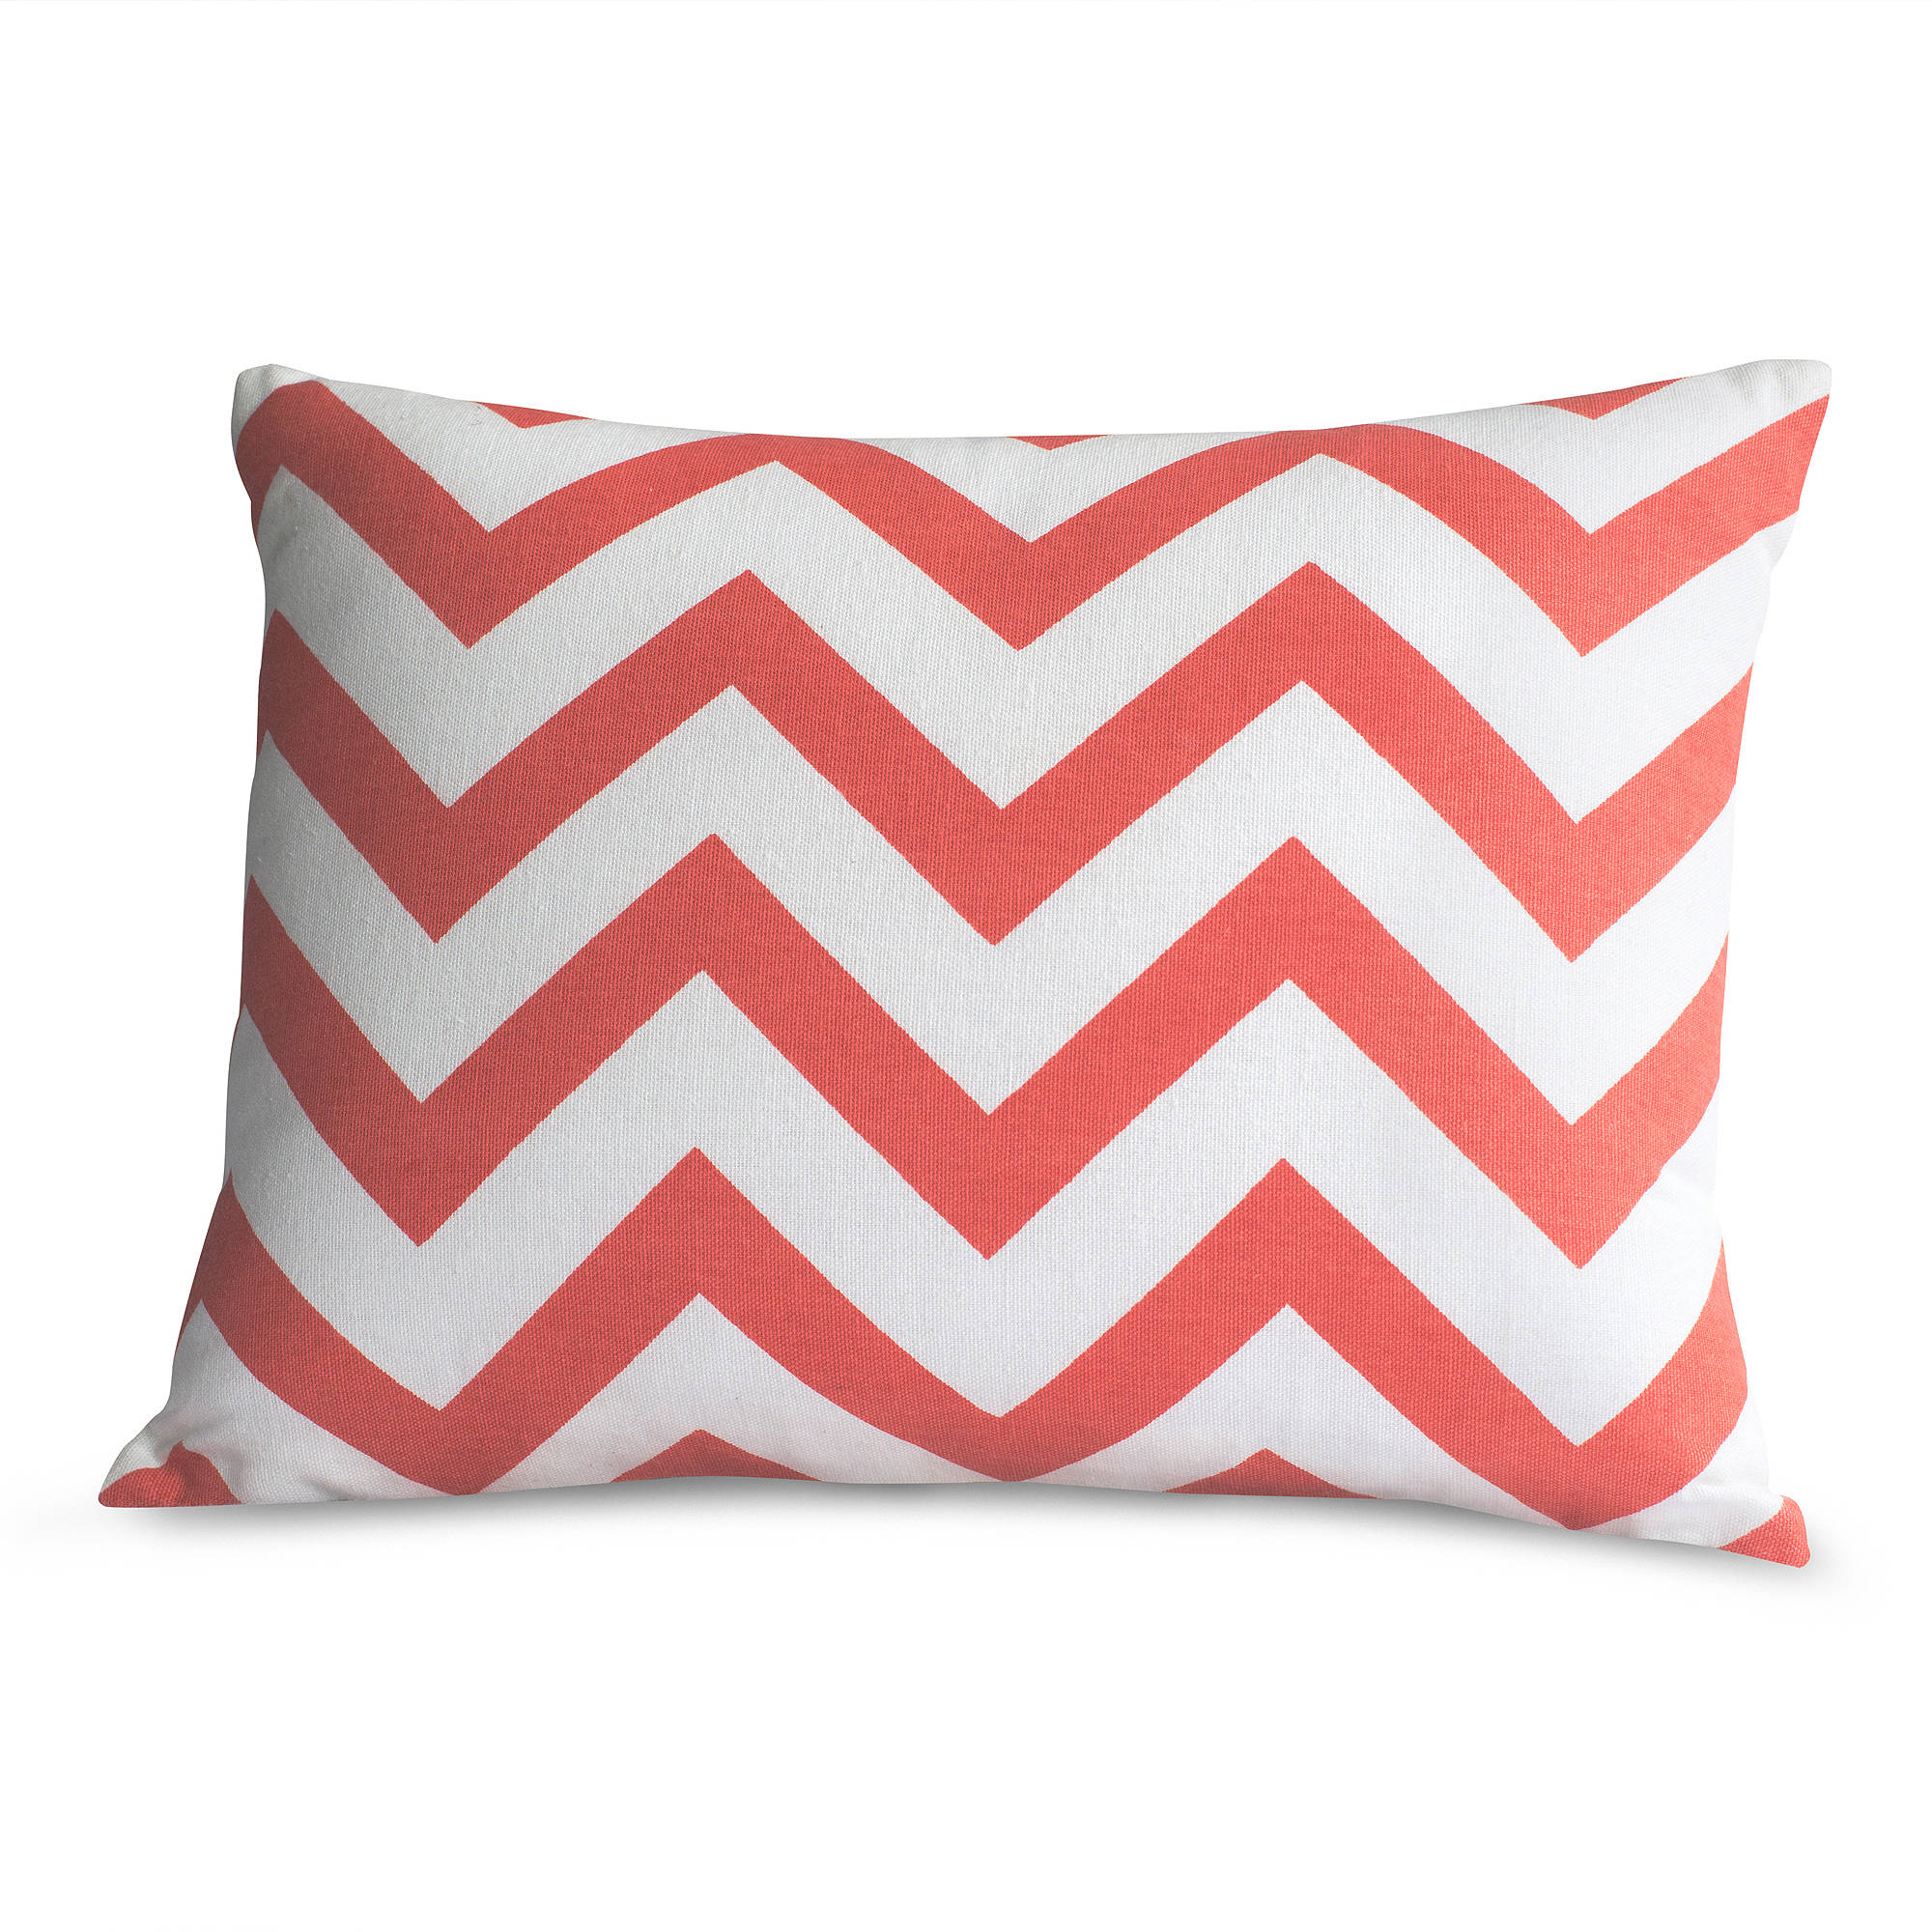 9 by Novogratz Pattern Play Decorative Pillow, Red/Yellow